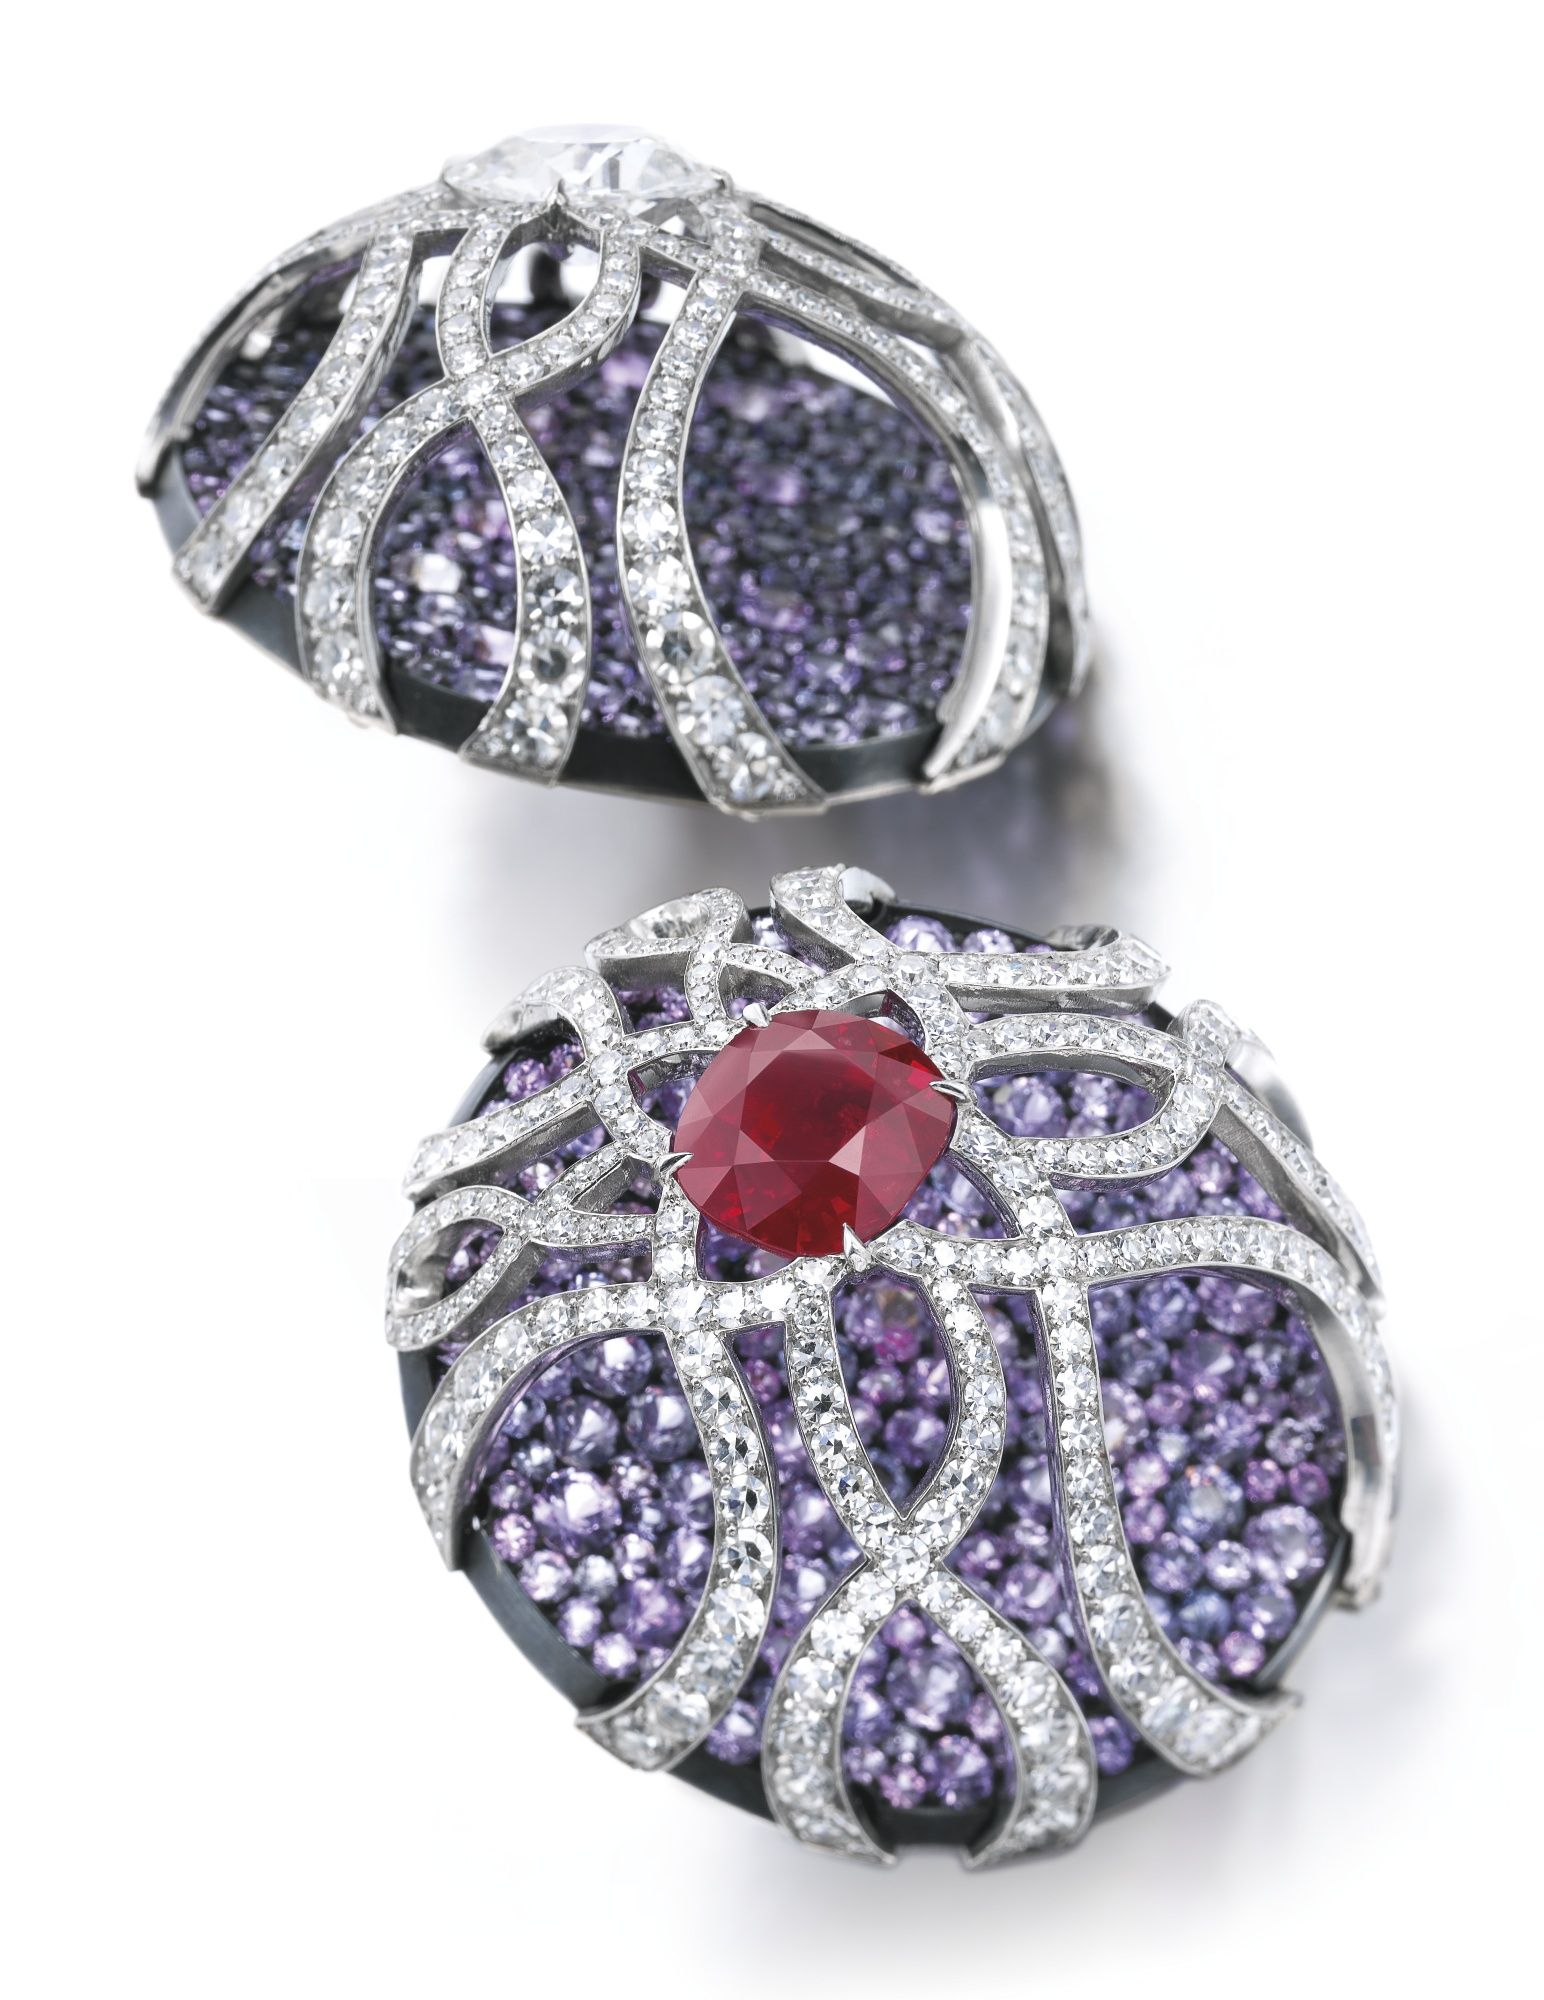 Pair of superb sapphire, ruby and diamond earrings, JAR Each of circular form, pavé-set with circular-cut sapphires of various hues ranging from light pink to purplish blue, surmounted with a stylised cage set with a cushion-shaped stone, one a diamond weighing 3.06 carats, the other a ruby weighing 4.89 carats, and lines of single-cut diamonds, signed JAR, French import marks, post and hinged back fittings, case by JAR.